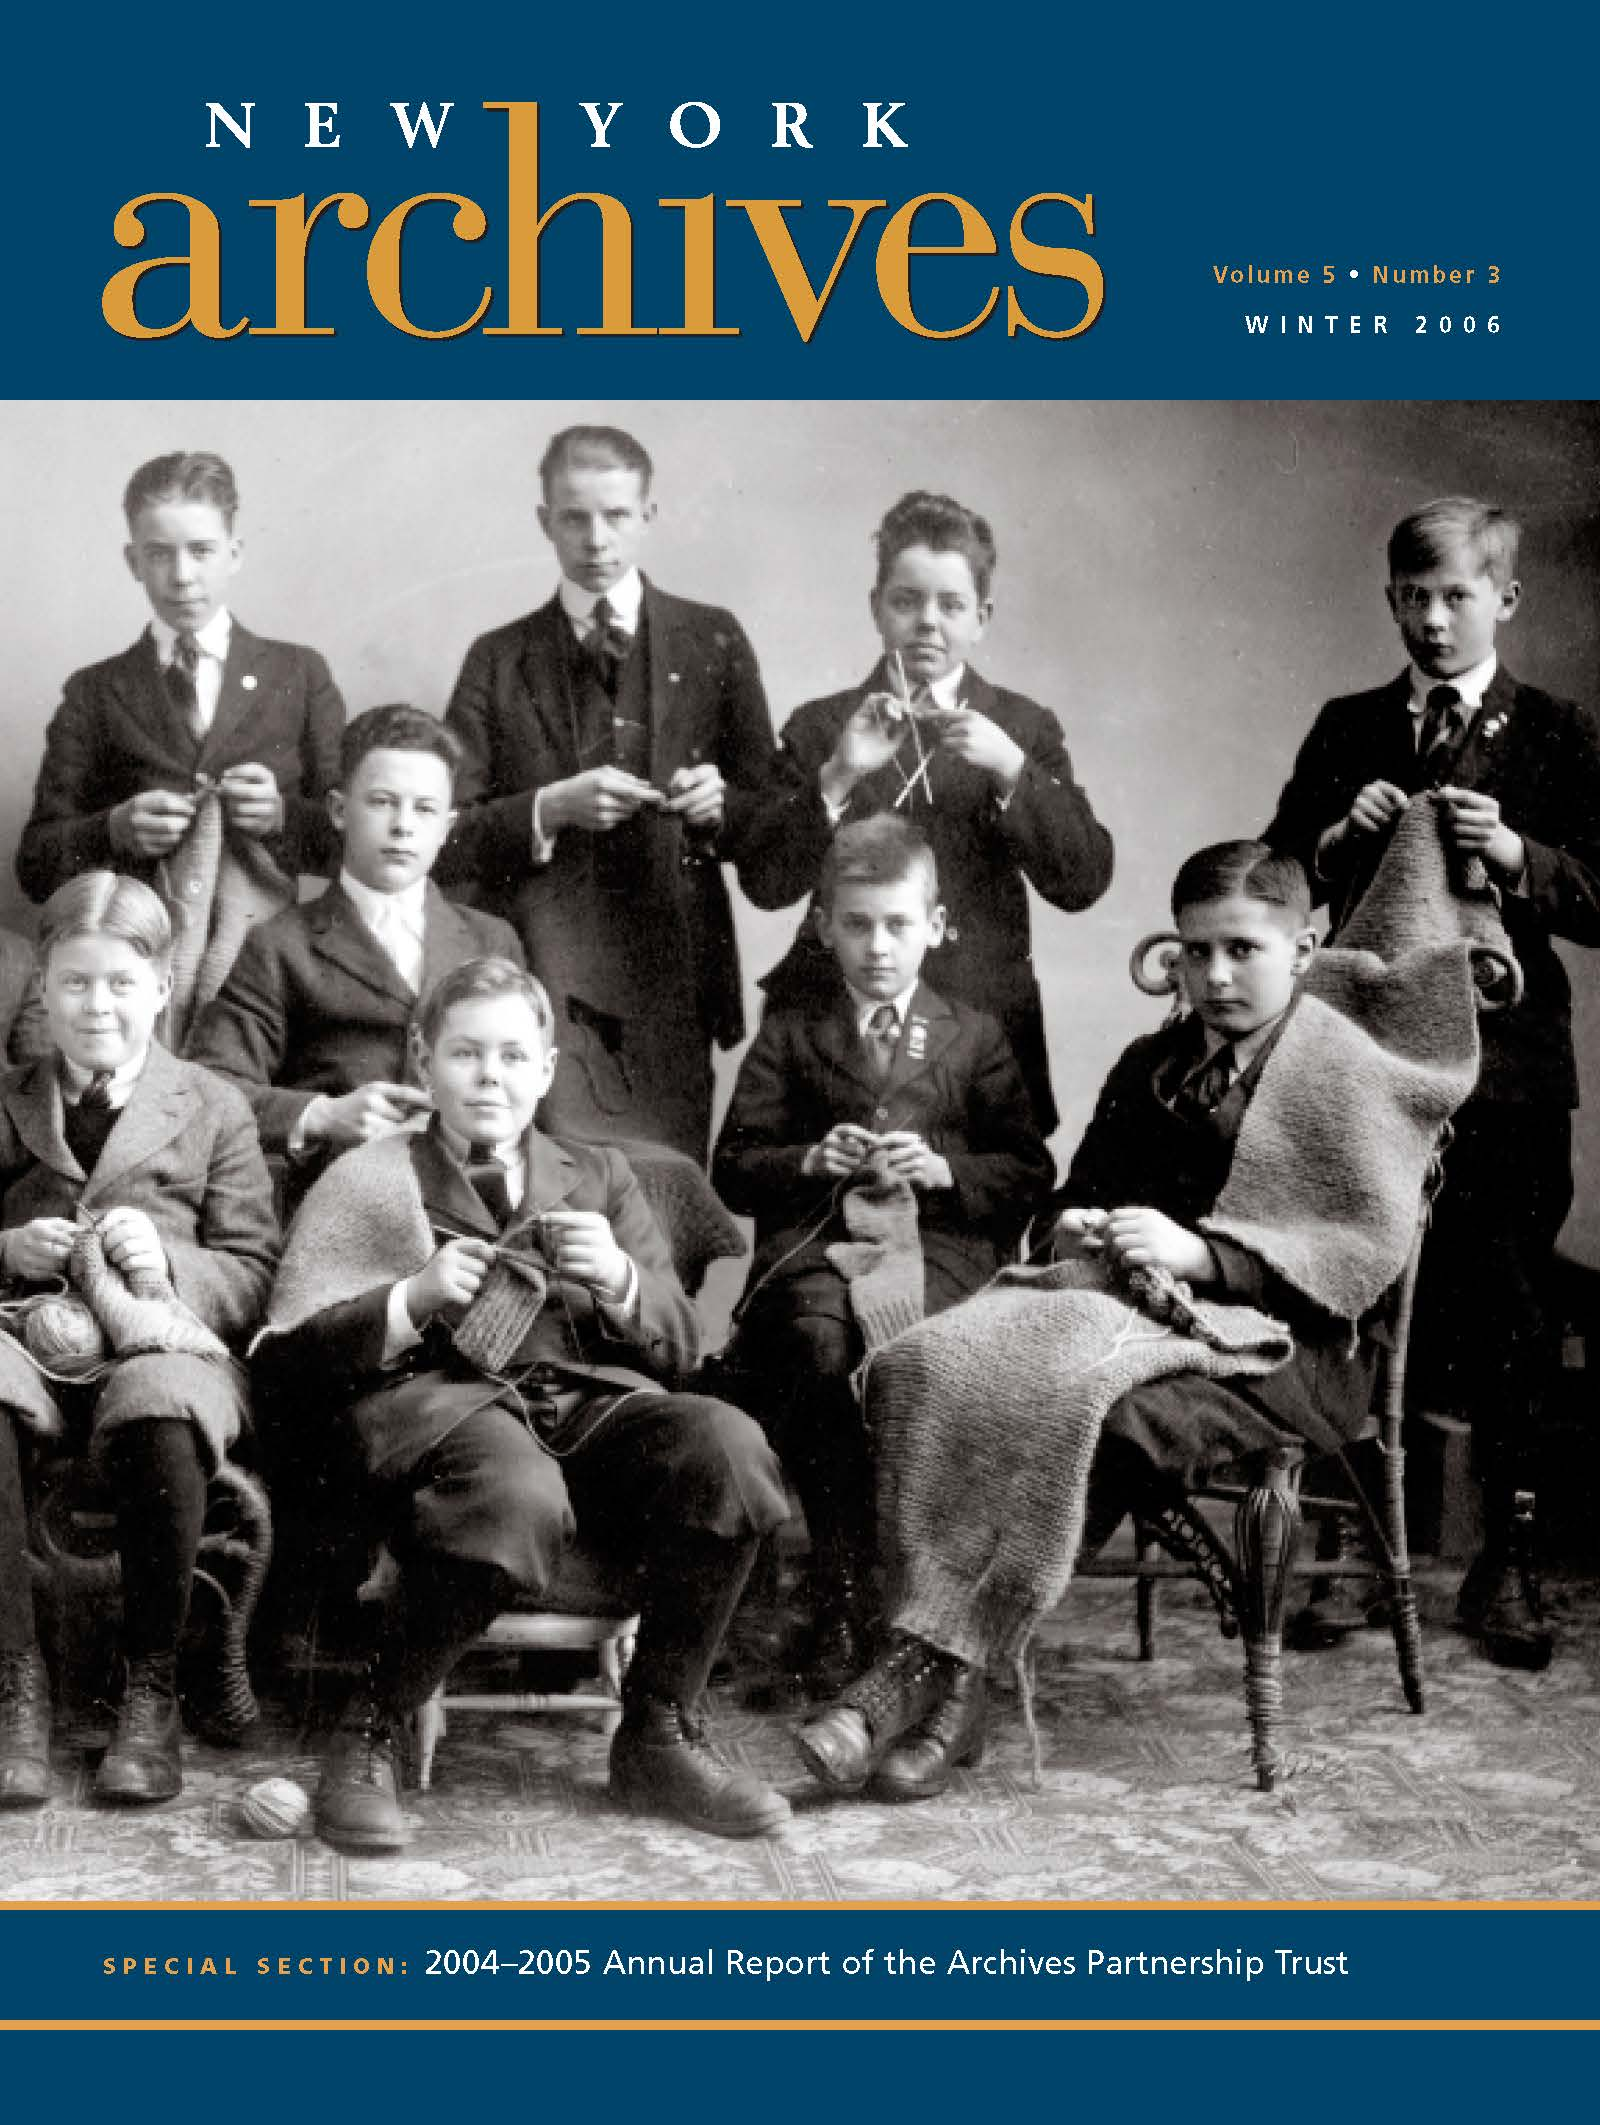 archivesmag_winter2006_cover.jpg